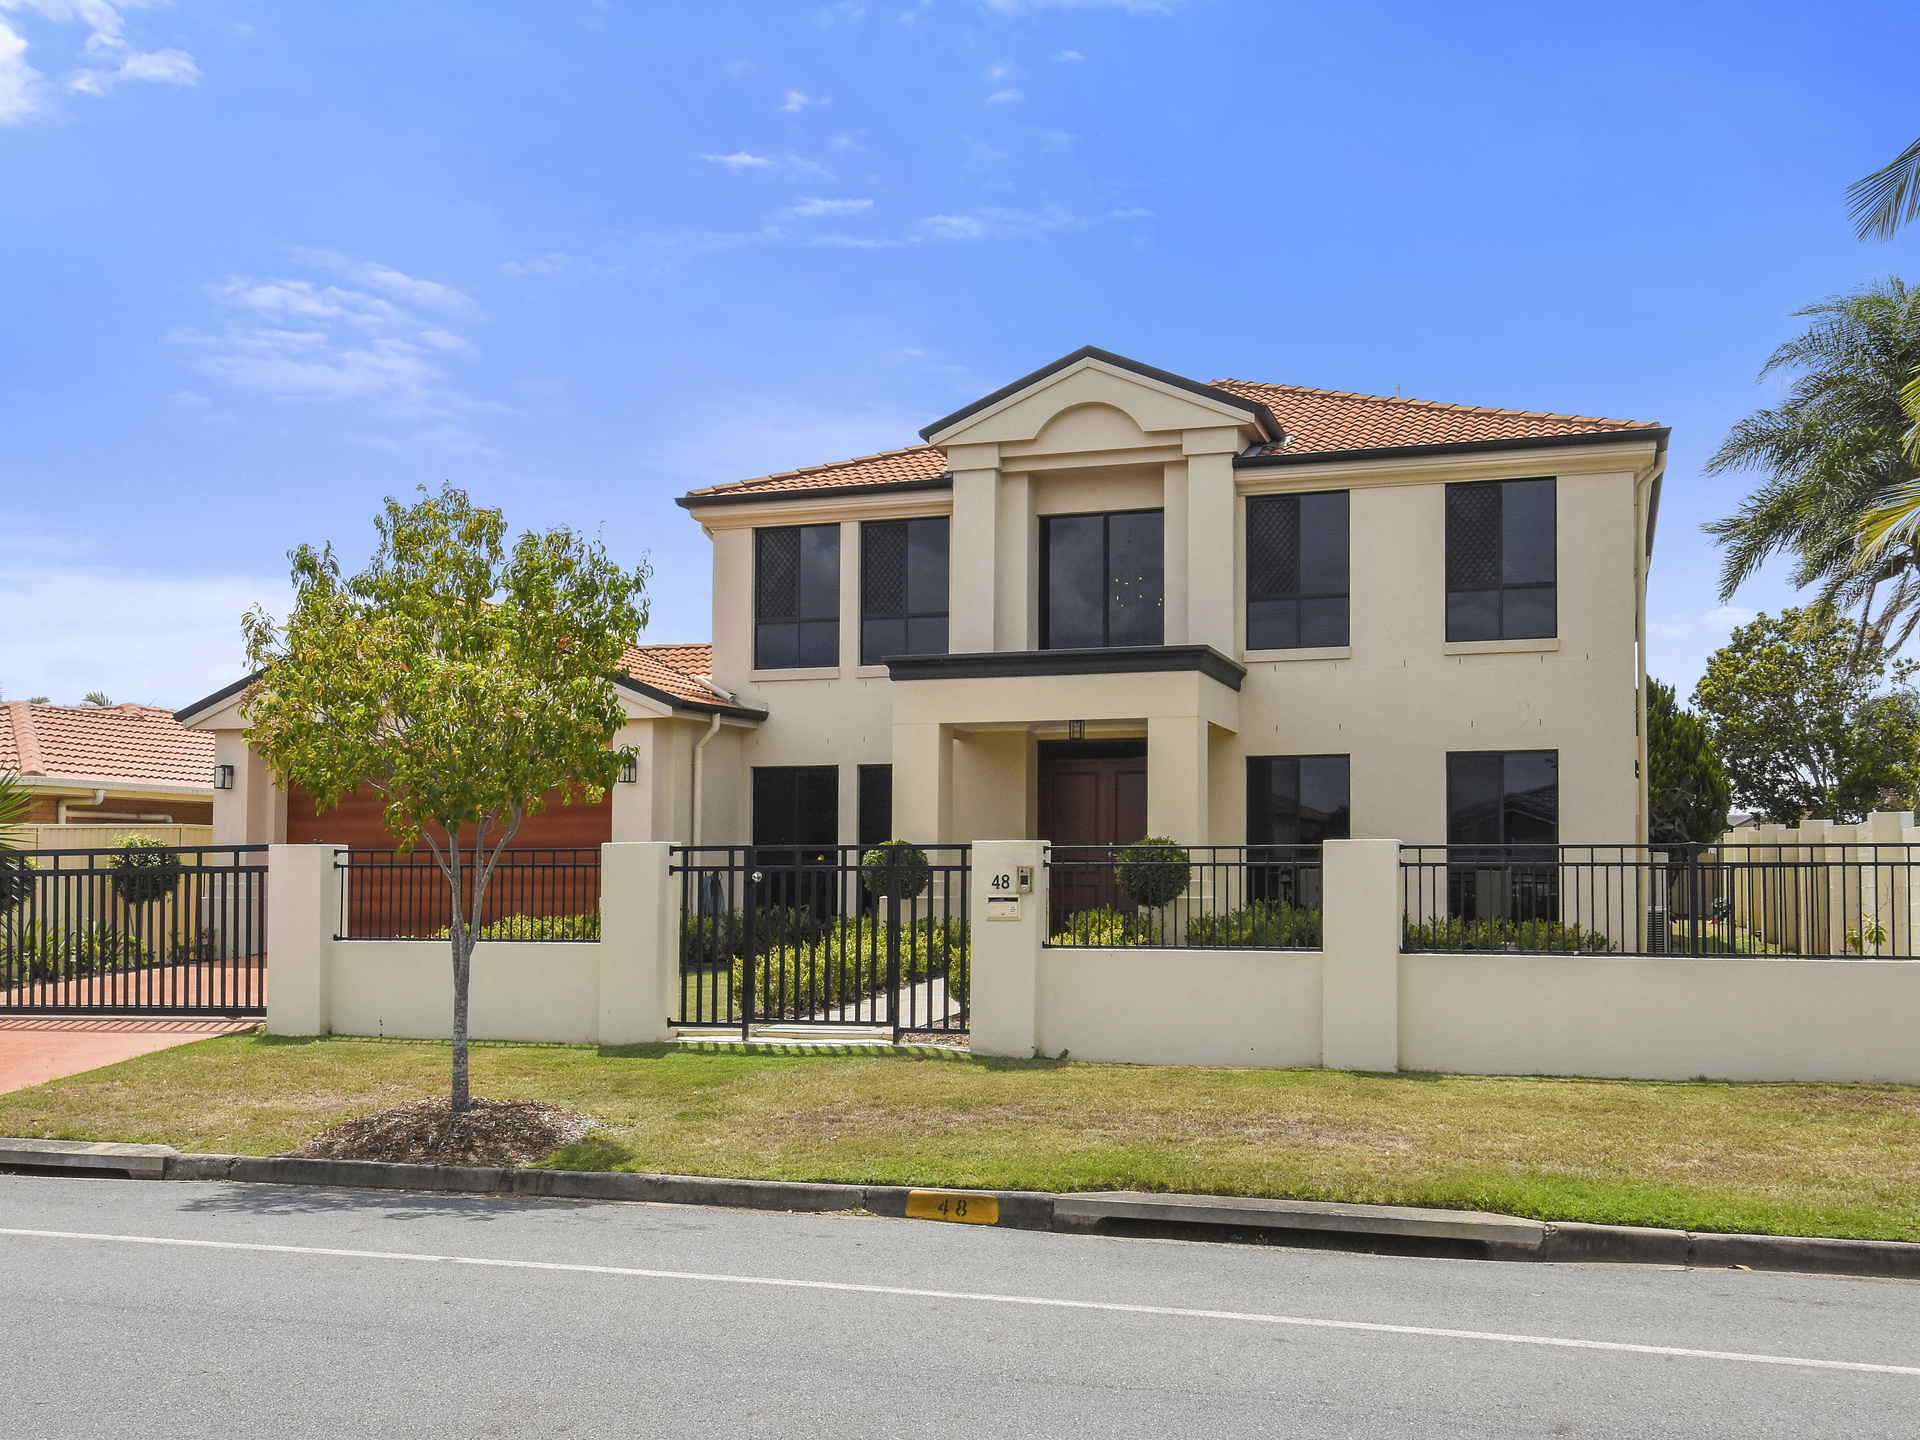 Real Estate | Gold Coast | Chevron Realty | 008 Open2view Id500031 48 Edinburgh Road